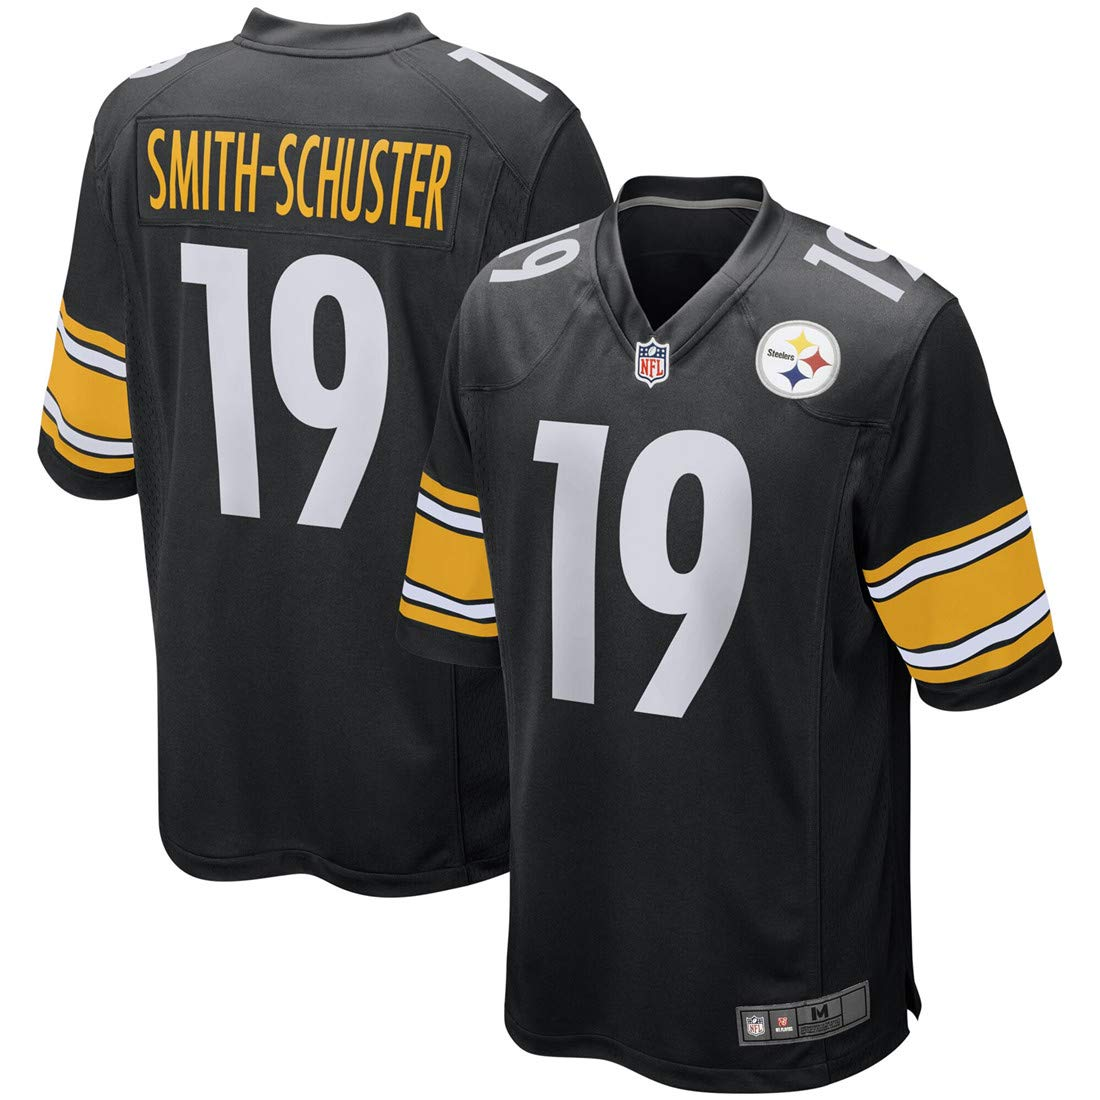 huge selection of 99ddd 34f07 Amazon.com : Outerstuff Youth Kids 19 JuJu Smith-Schuster ...